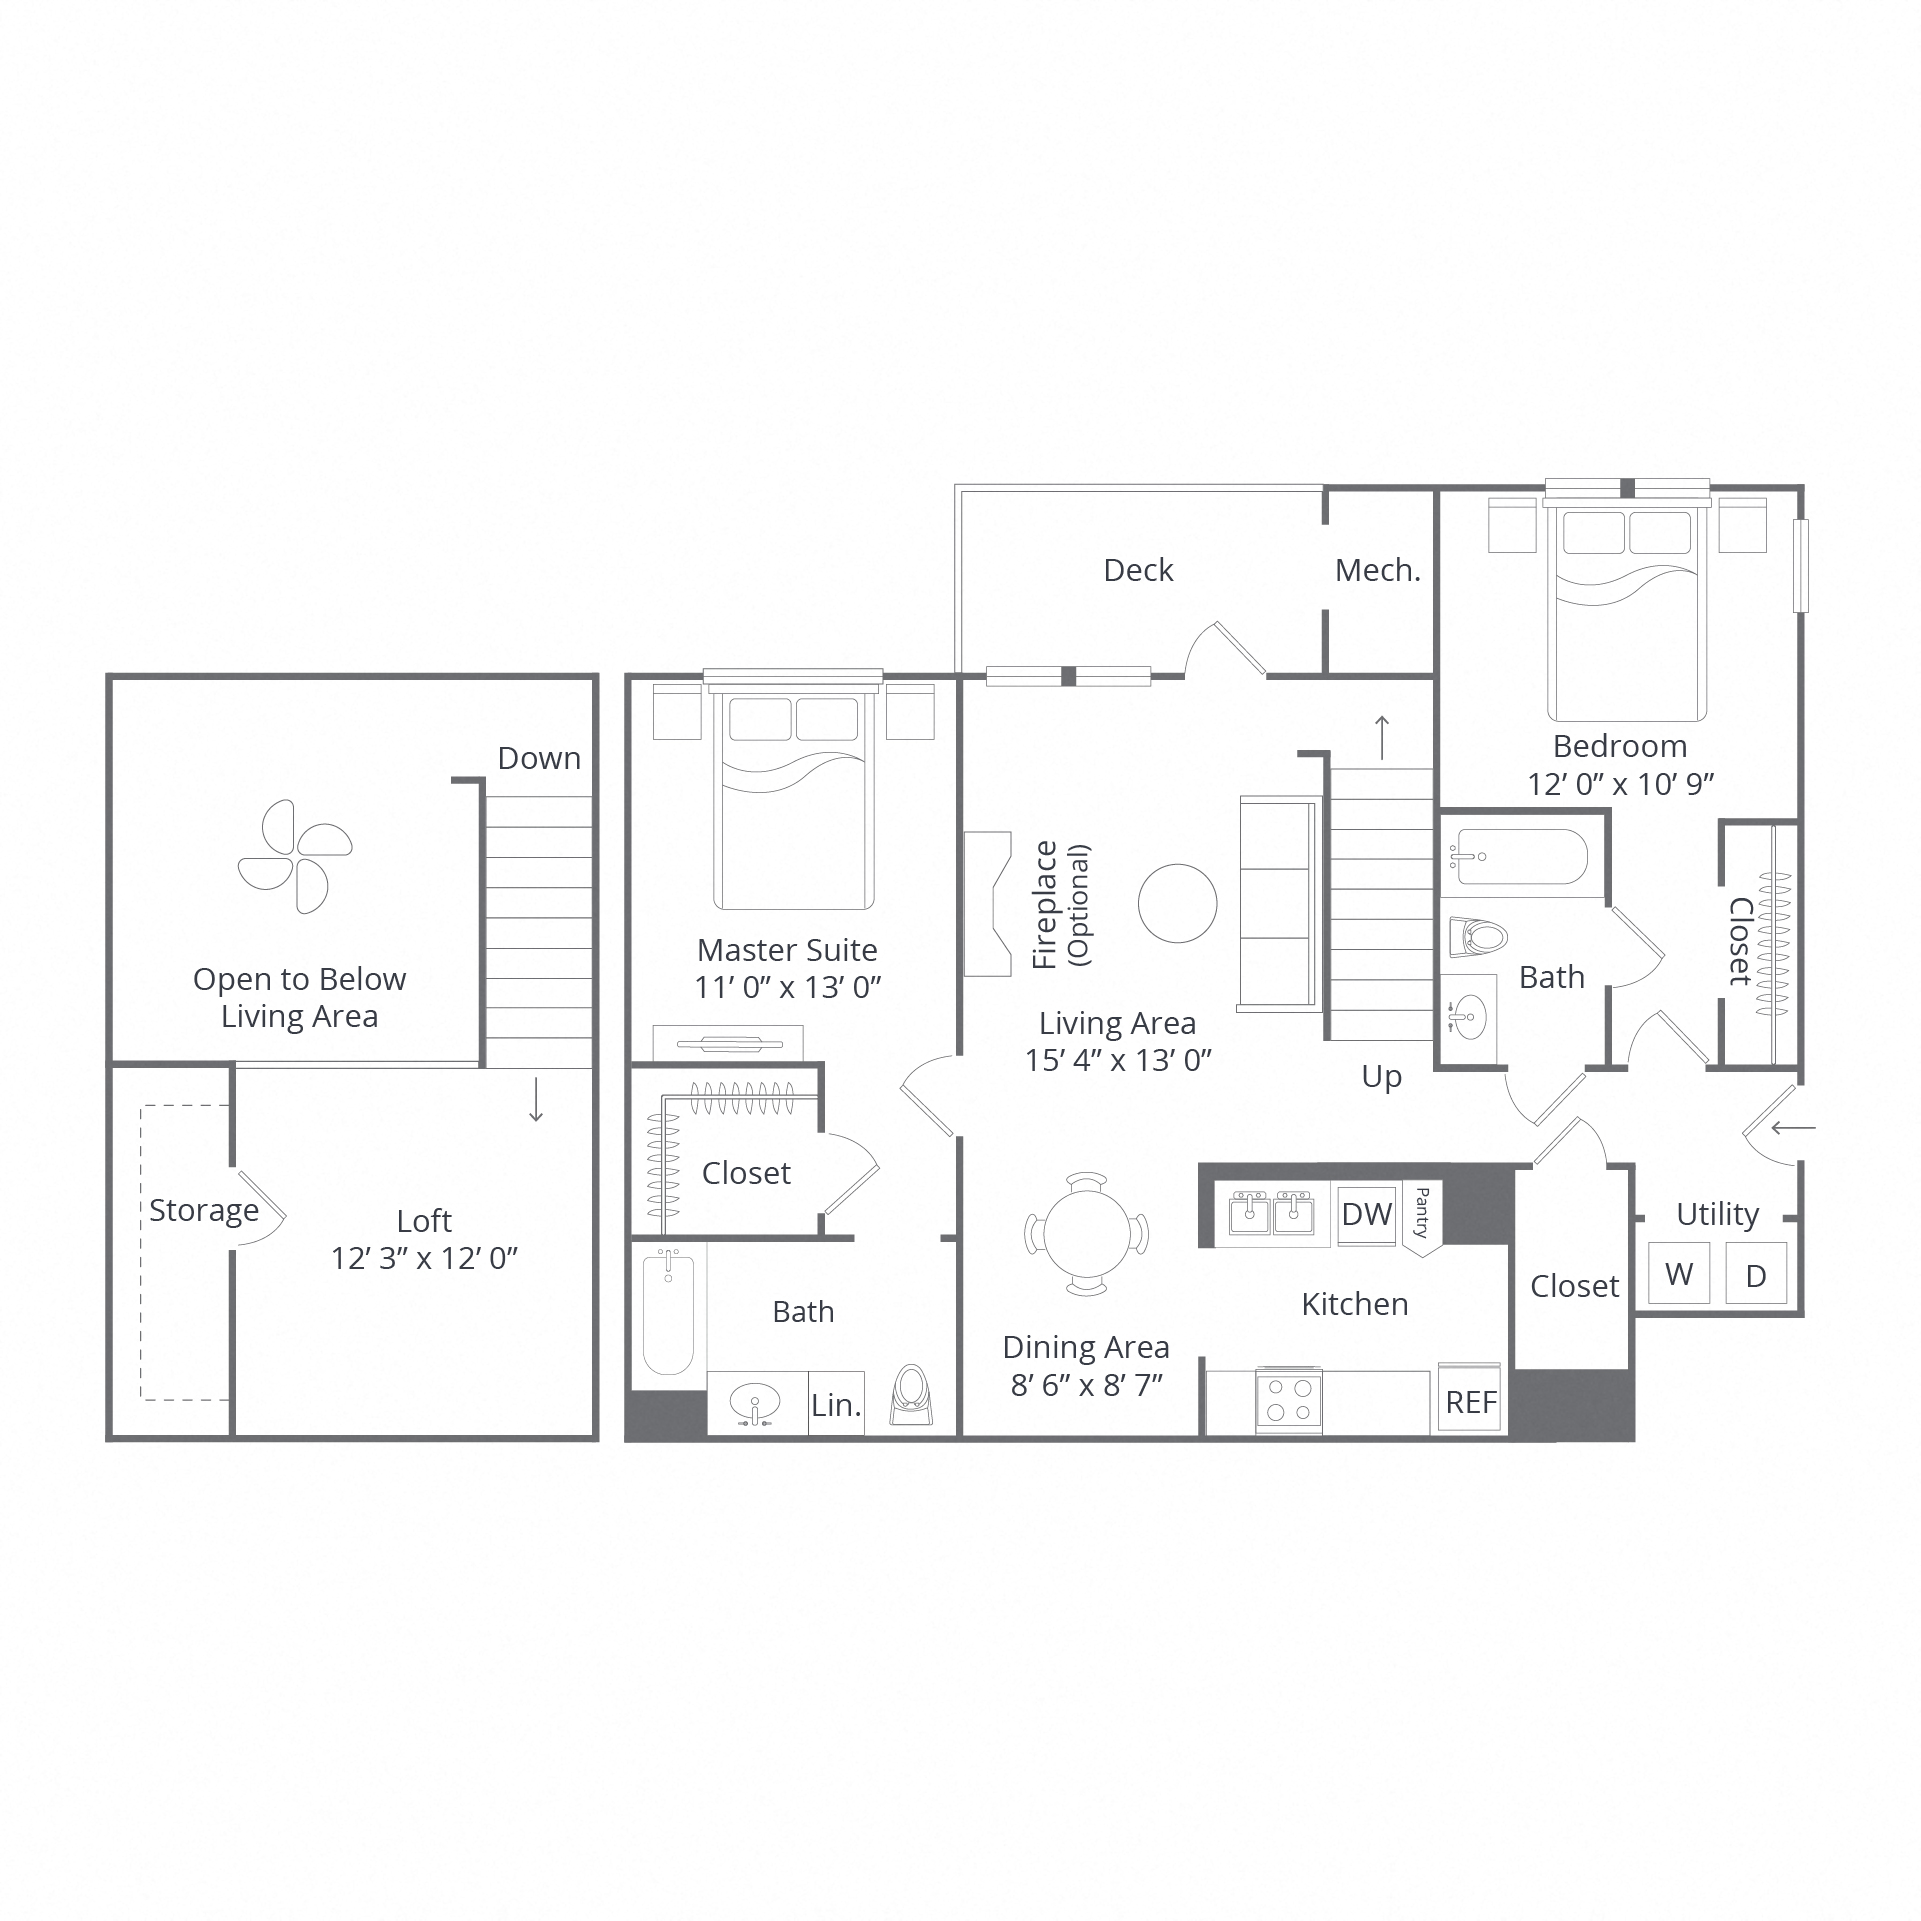 Laurel%20loft 2bed 1538sqft